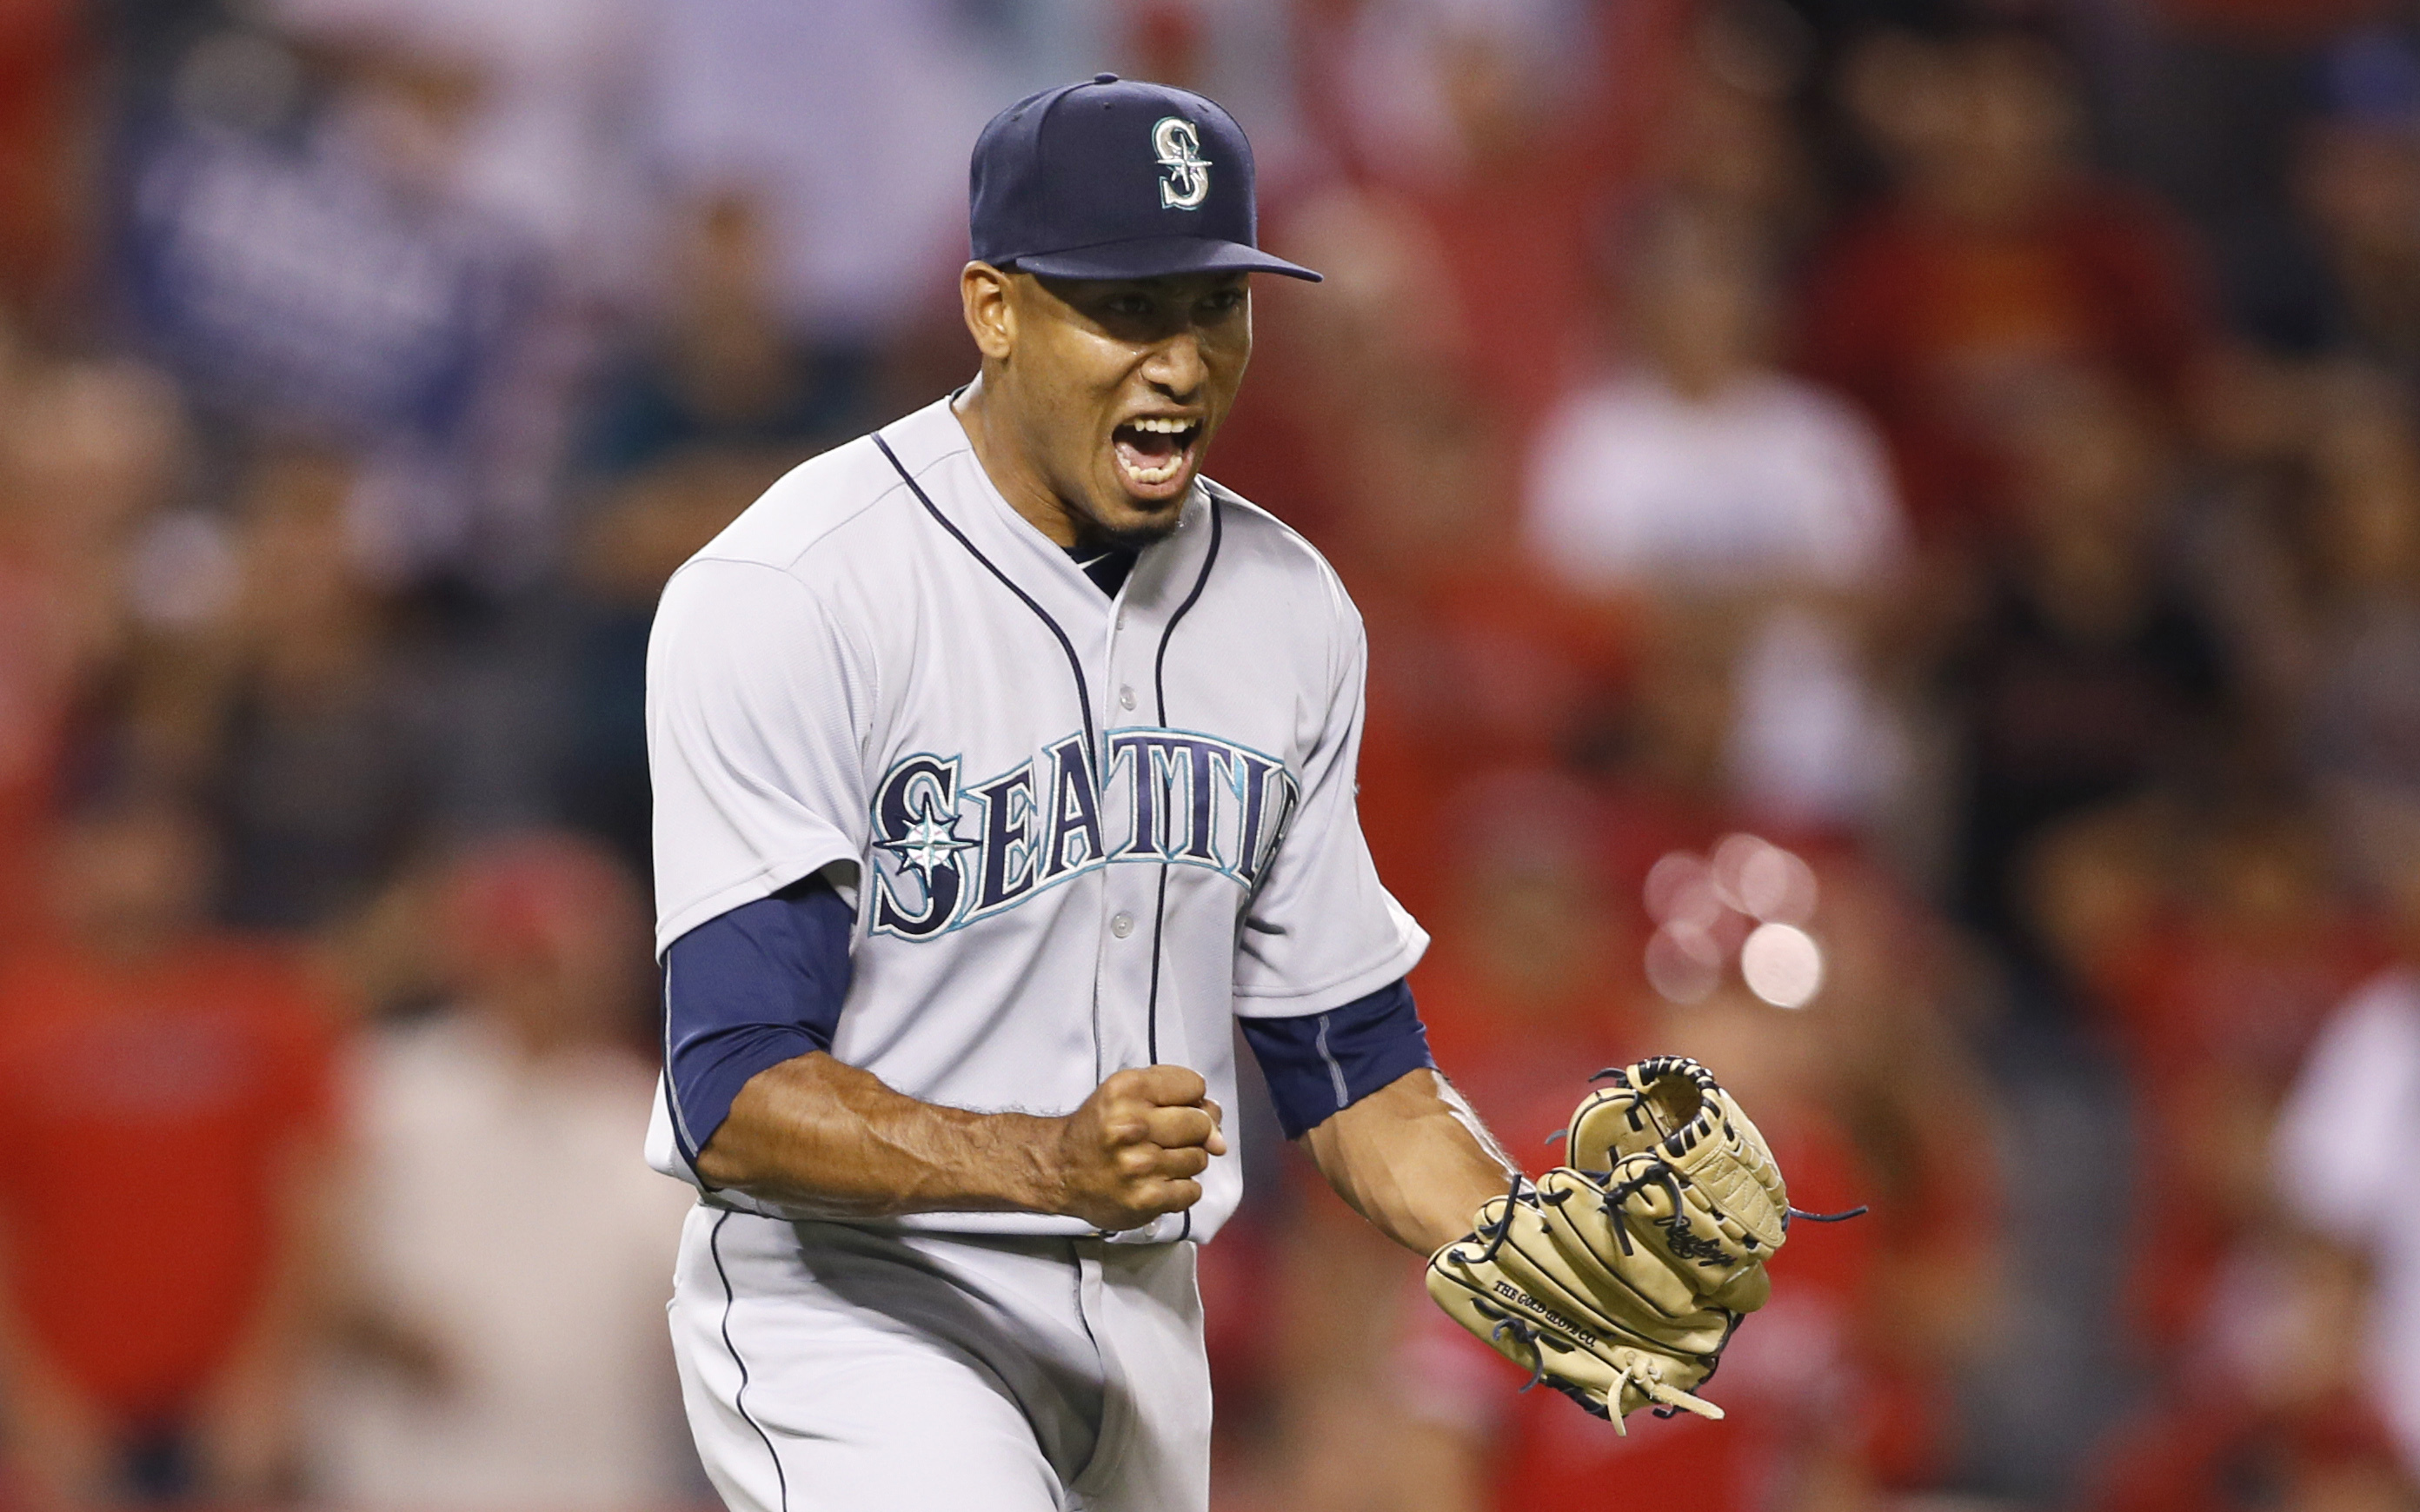 Seattle Mariners Edwin Diaz celebrates after third baseman Kyle Seager dove to stop a ball and throw out Los Angeles Angels' Andrelton Simmons at first base to end the game and give the Mariners a 4-3 victory in the bottom of the ninth inning of a basebal